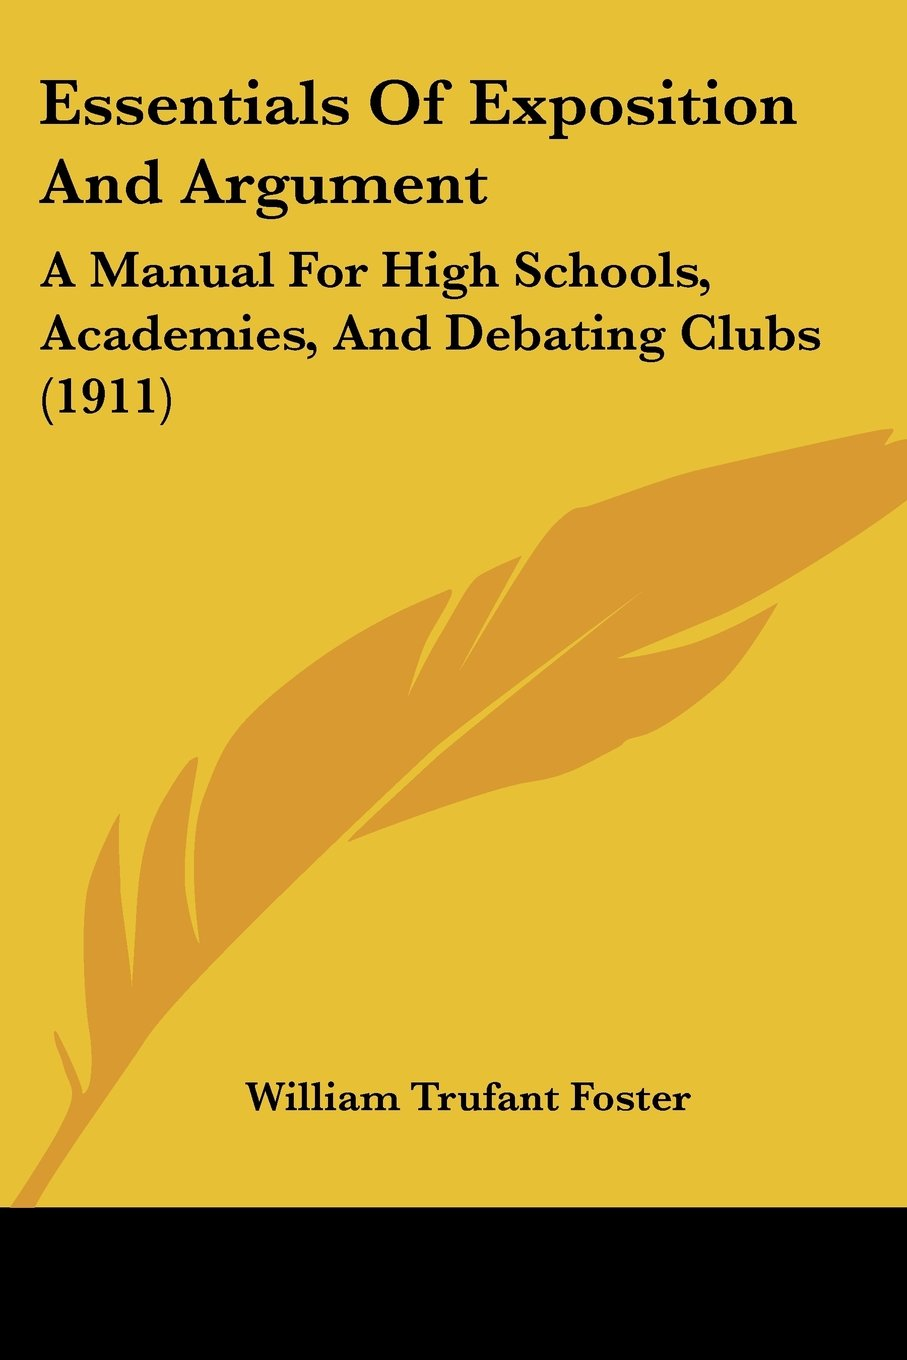 Download Essentials Of Exposition And Argument: A Manual For High Schools, Academies, And Debating Clubs (1911) pdf epub